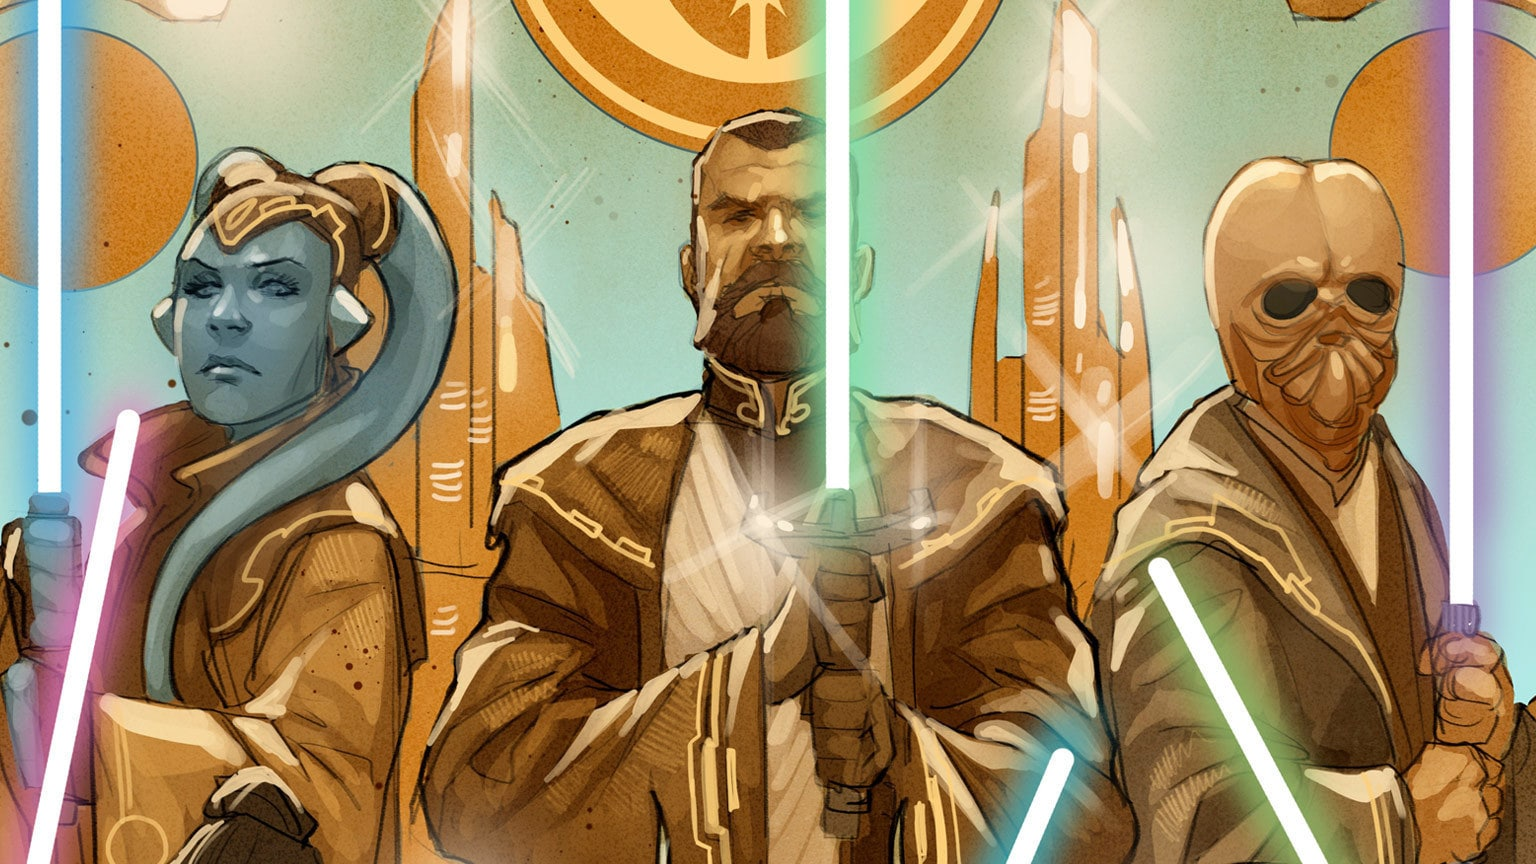 Lucasfilm to Launch Star Wars: The High Republic Publishing Campaign in 2021